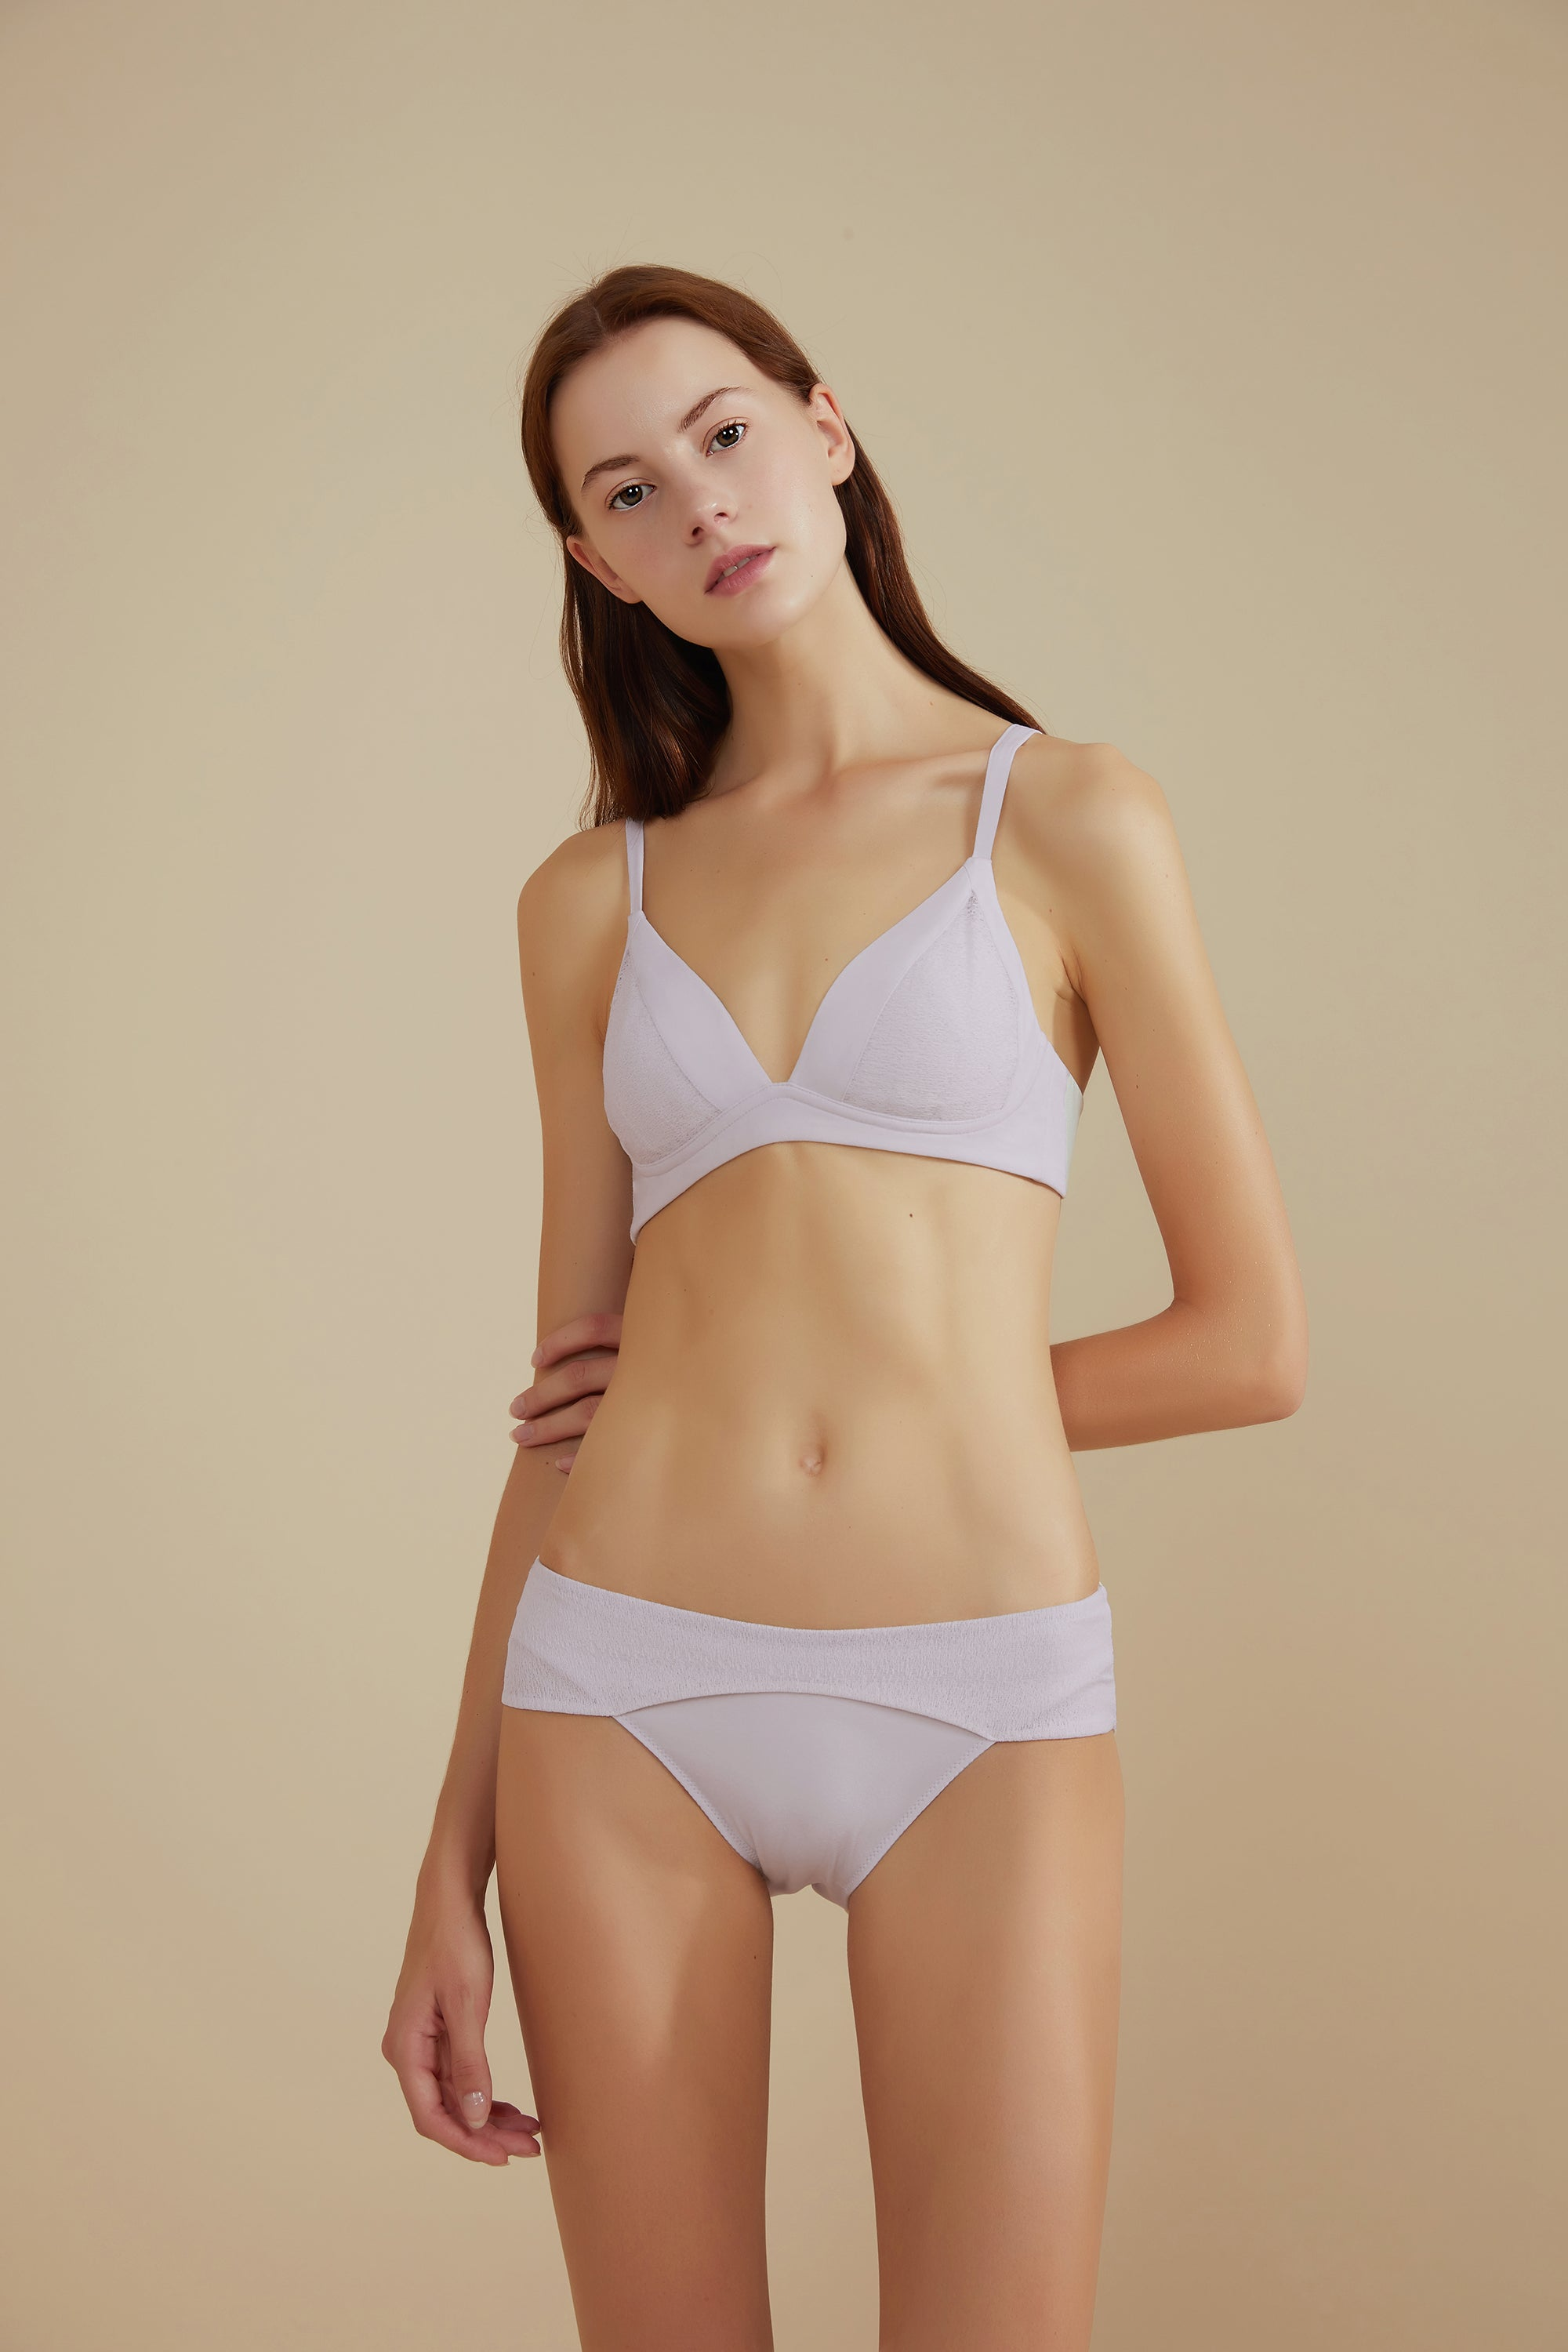 NEIWAI Leavers Lace Triangle Bra in Gray